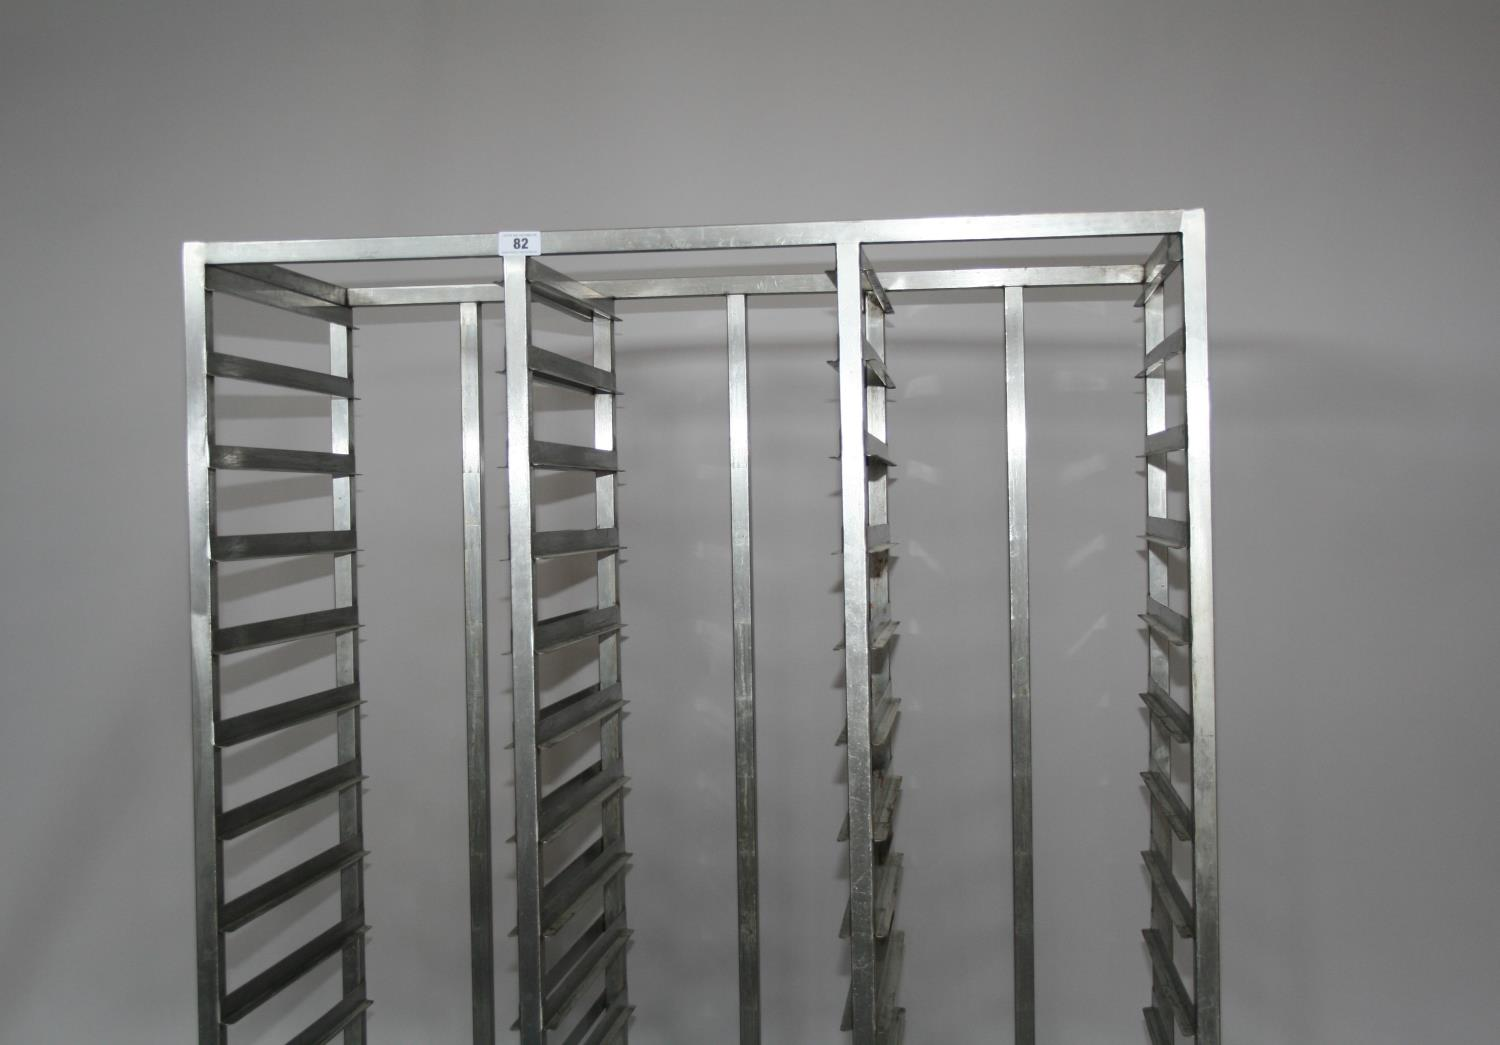 Stainless steel banqueting tray holder 110 W x 170 H x 56 D - Image 3 of 3